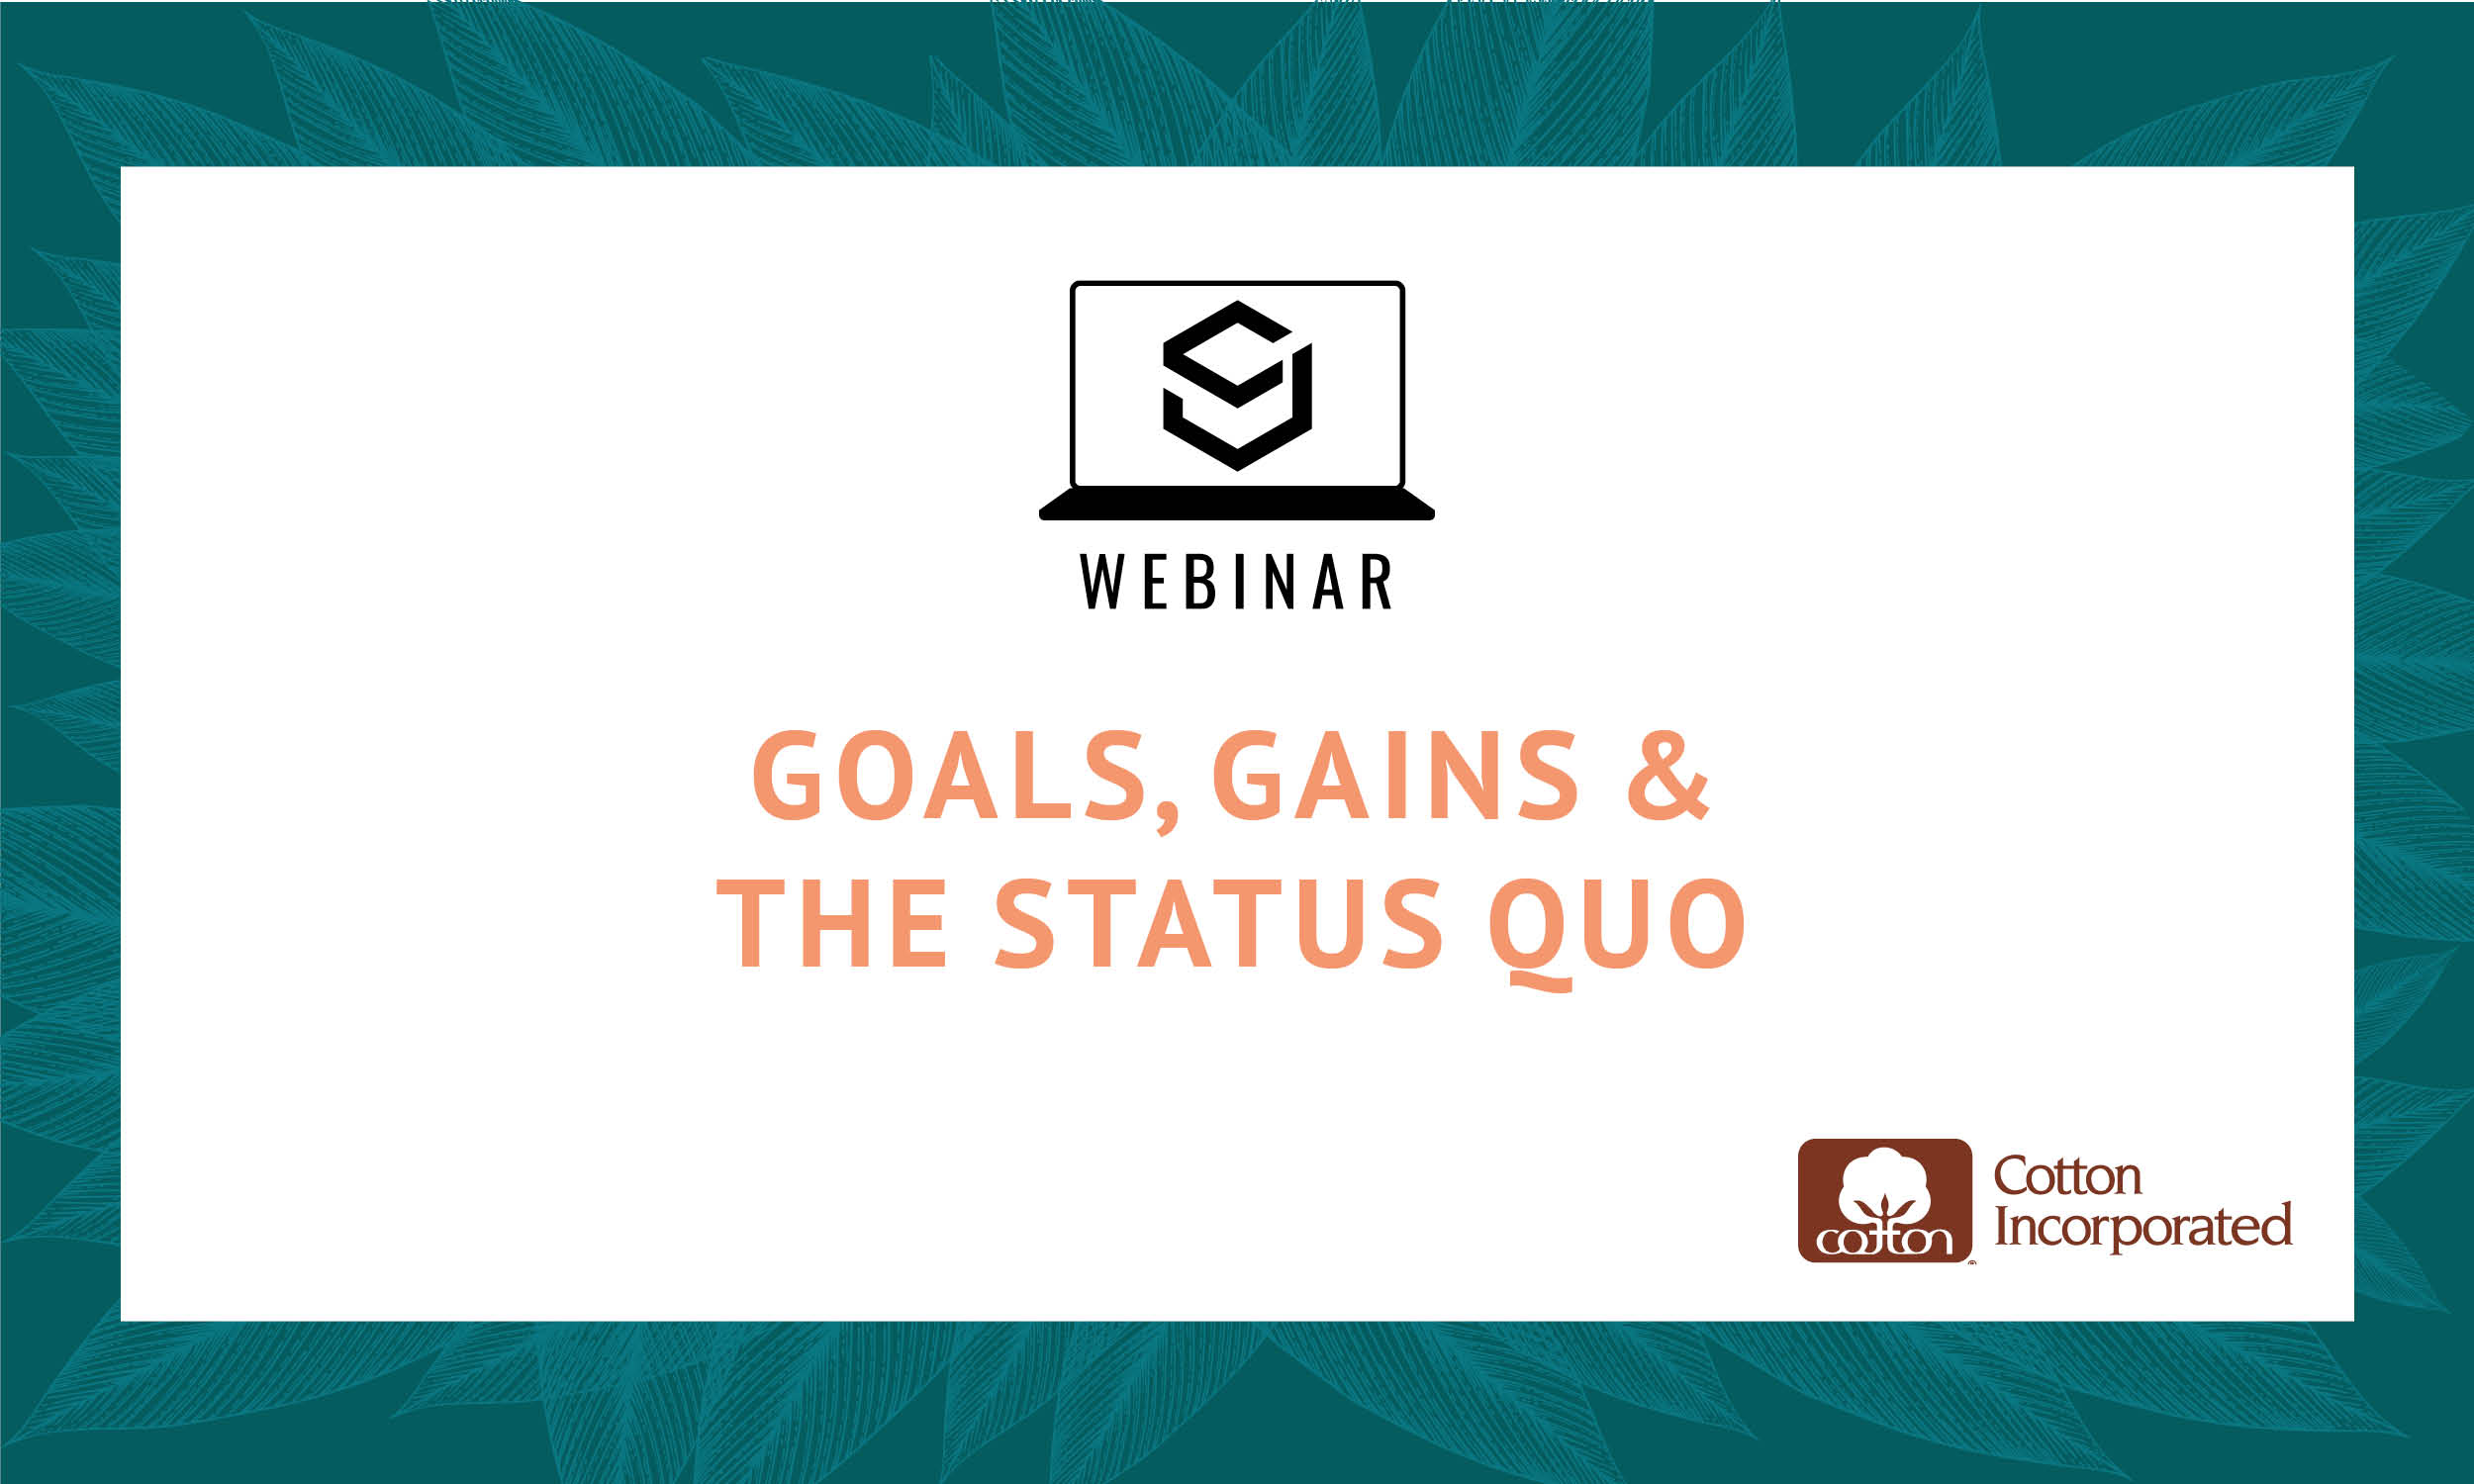 SJ Webinar: Goals, Gains & the Status Quo